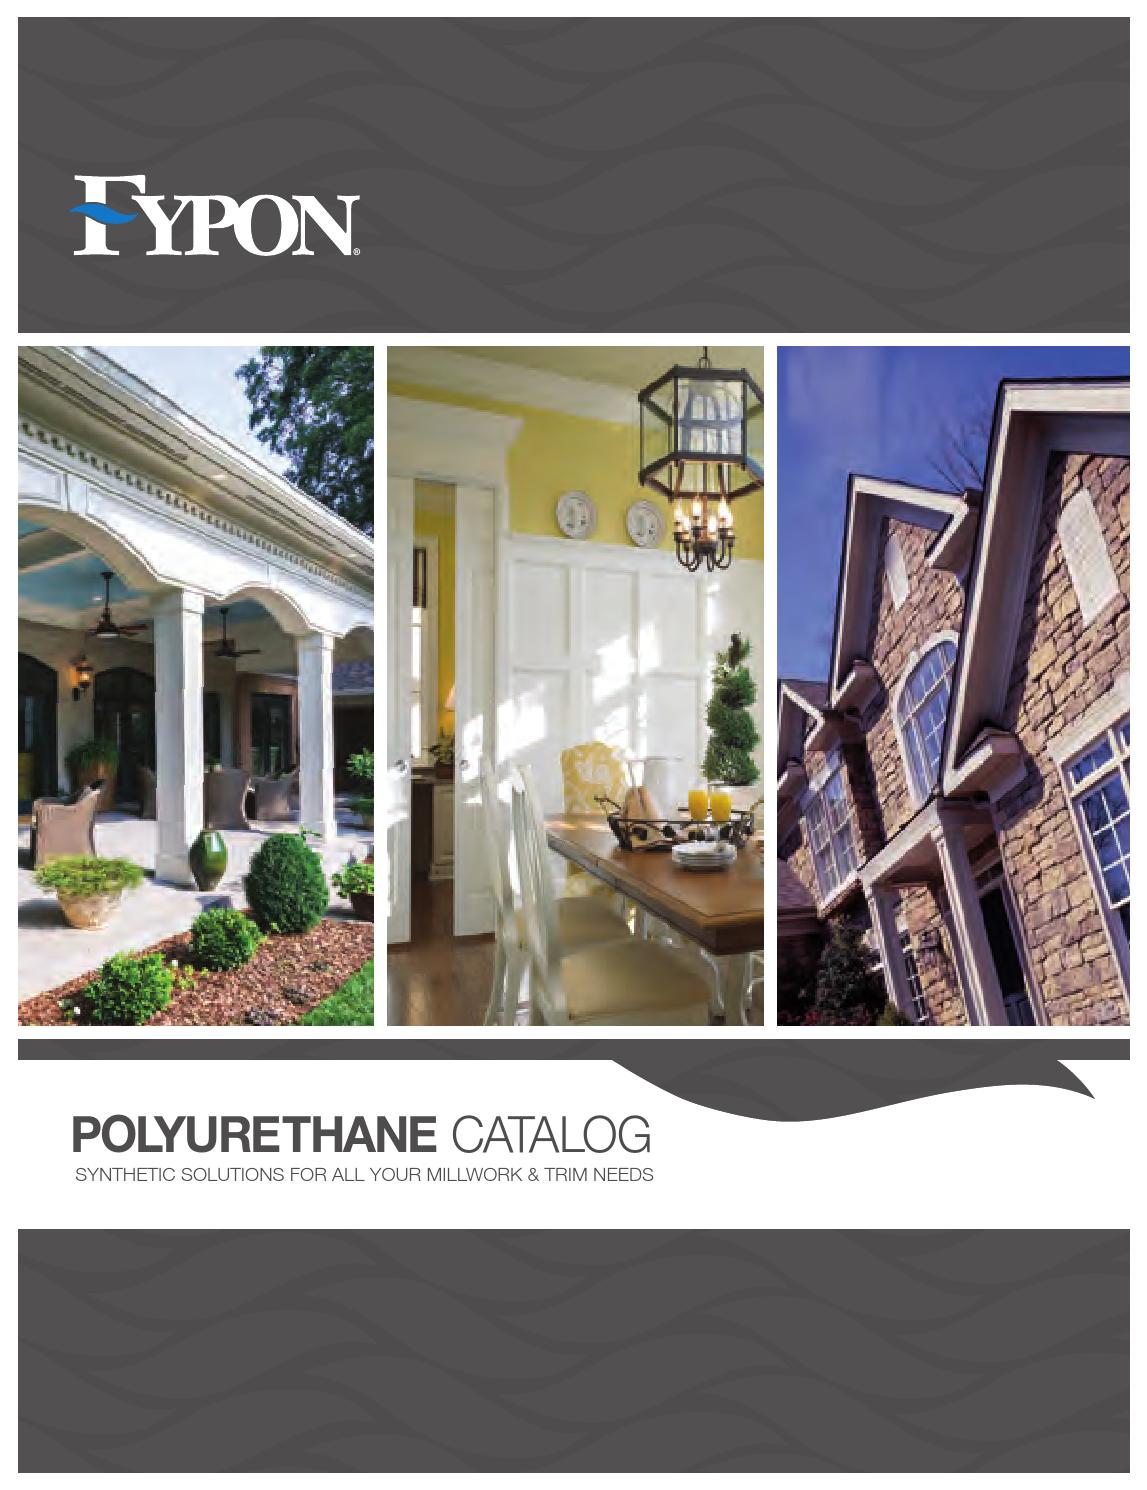 Fypon catalog by western building products issuu for Fypon gable decorations